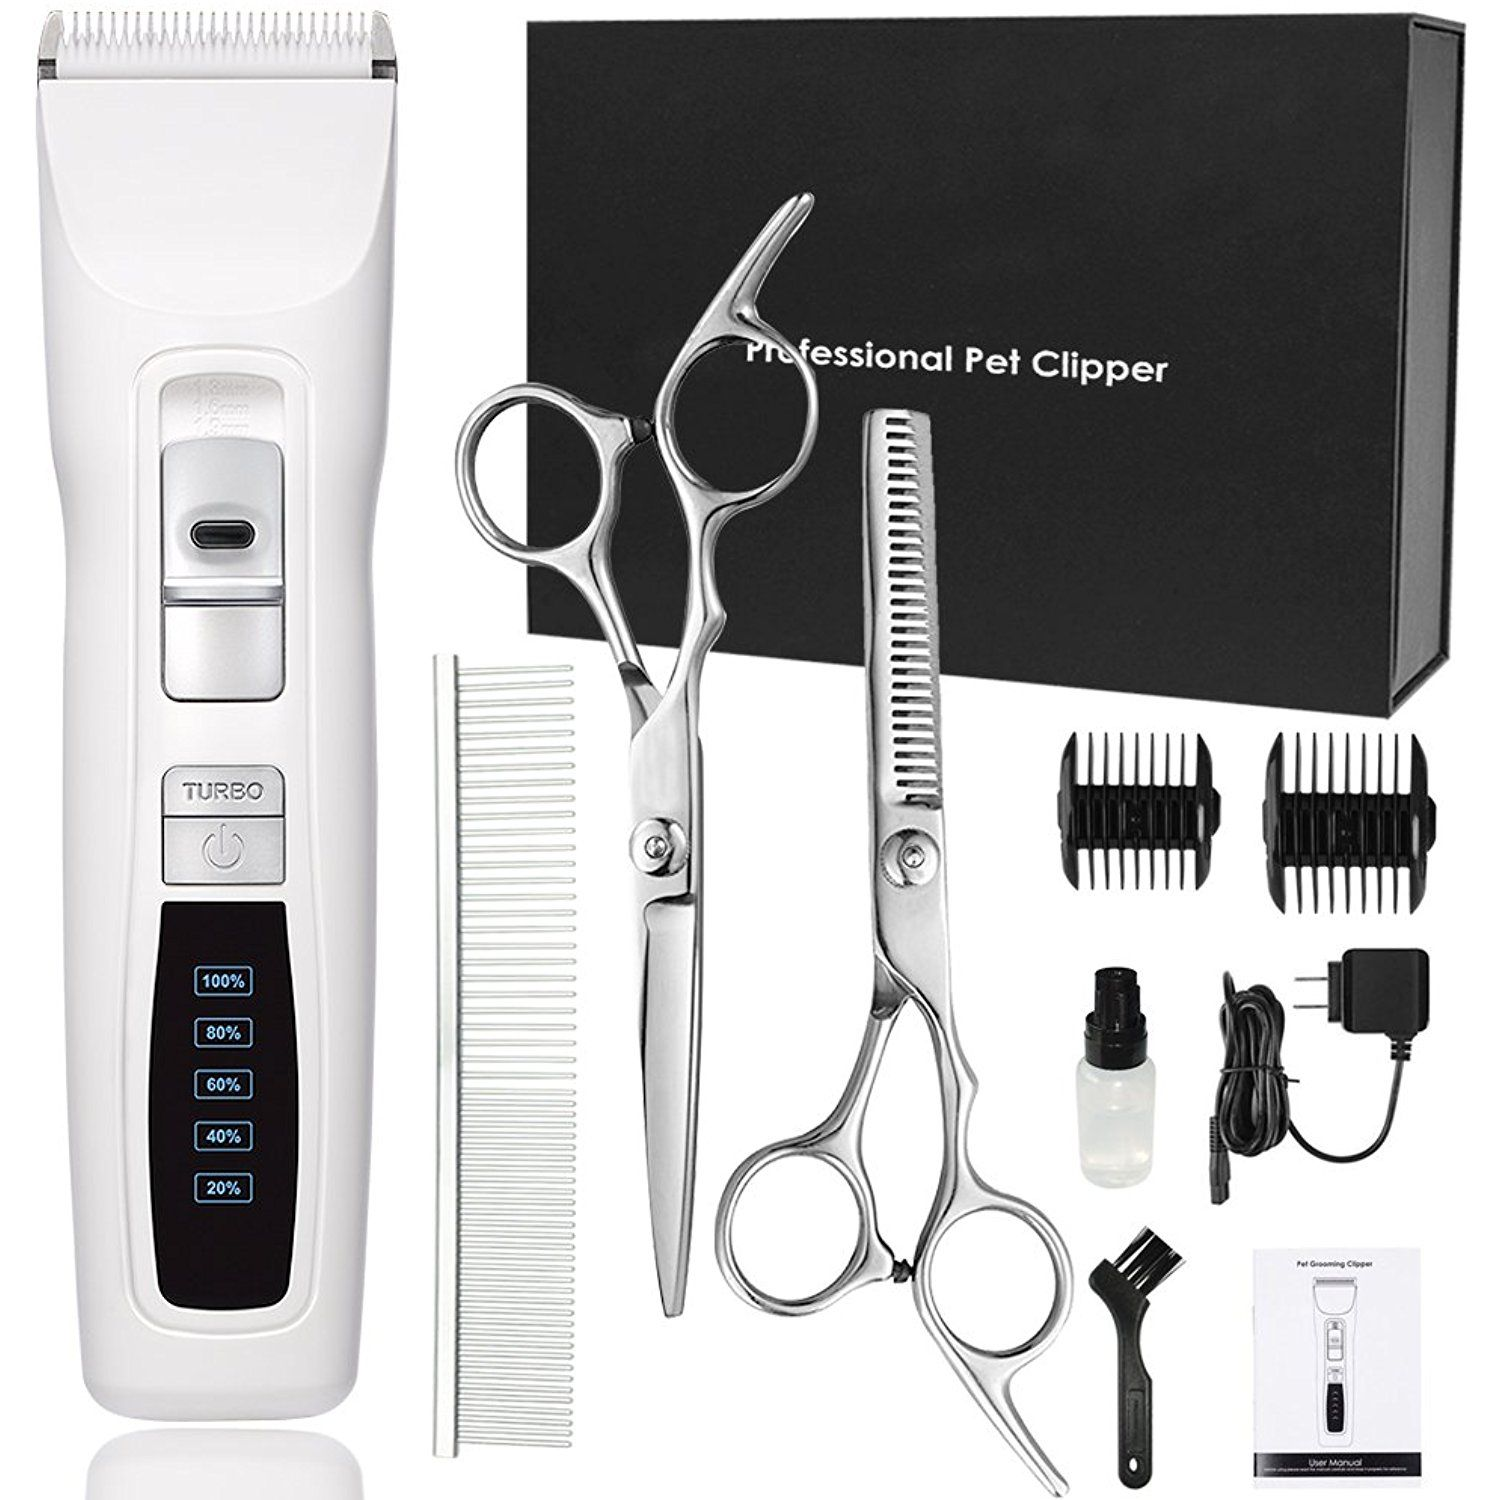 Dog Clippers Professional Heavy Duty 2 Speed Turbo Dog Grooming Clippers Kit For Thick Coats White Pet Dog Grooming Clippers Dog Clippers Dog Grooming Supplies